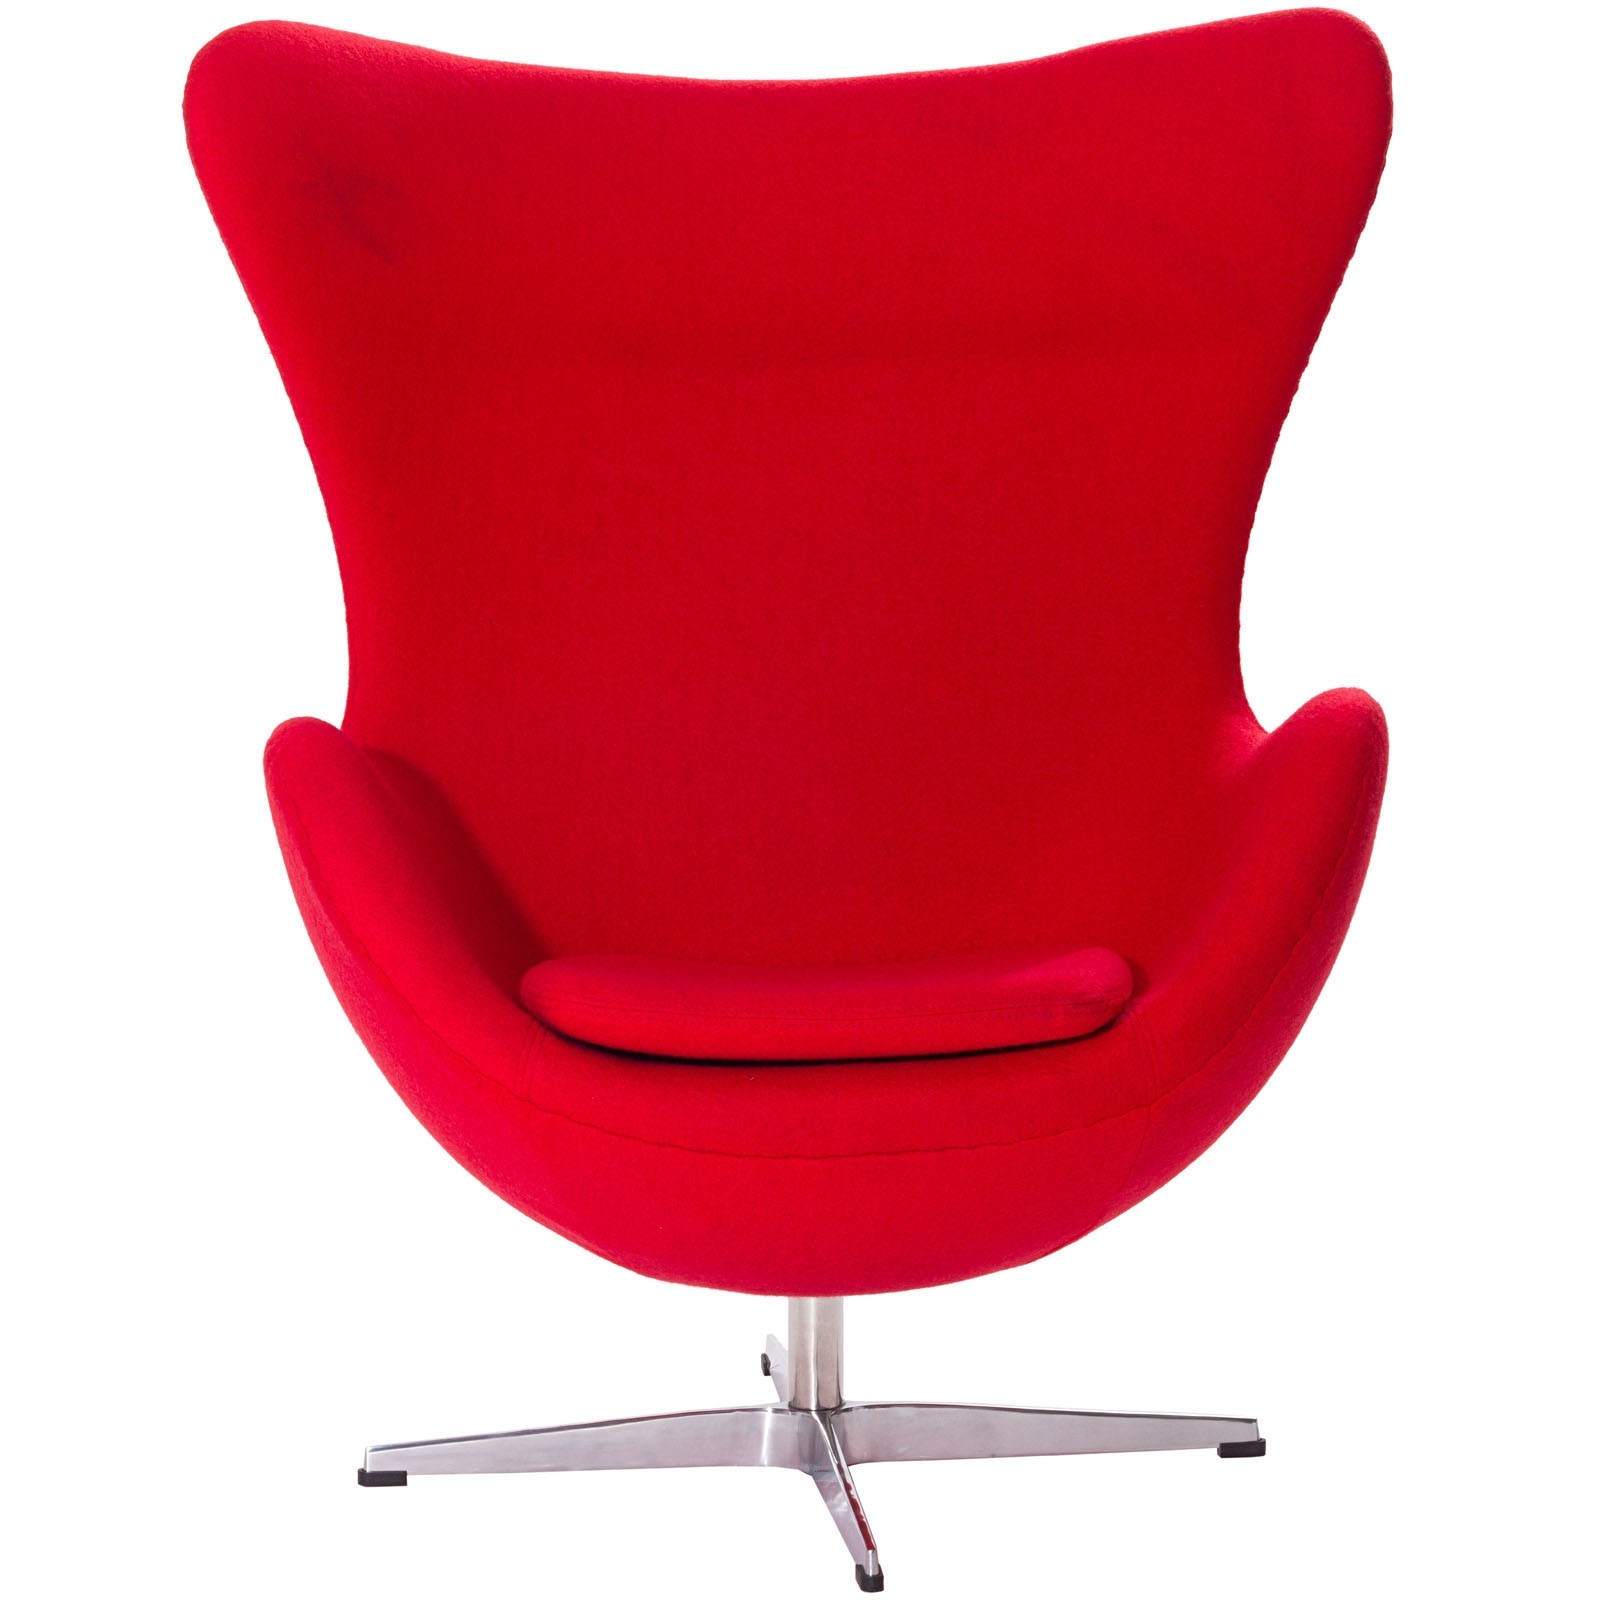 Arne Jacobsen Egg Chair Wool : EEI 142 RED from www.modterior.com size 1600 x 1600 jpeg 167kB